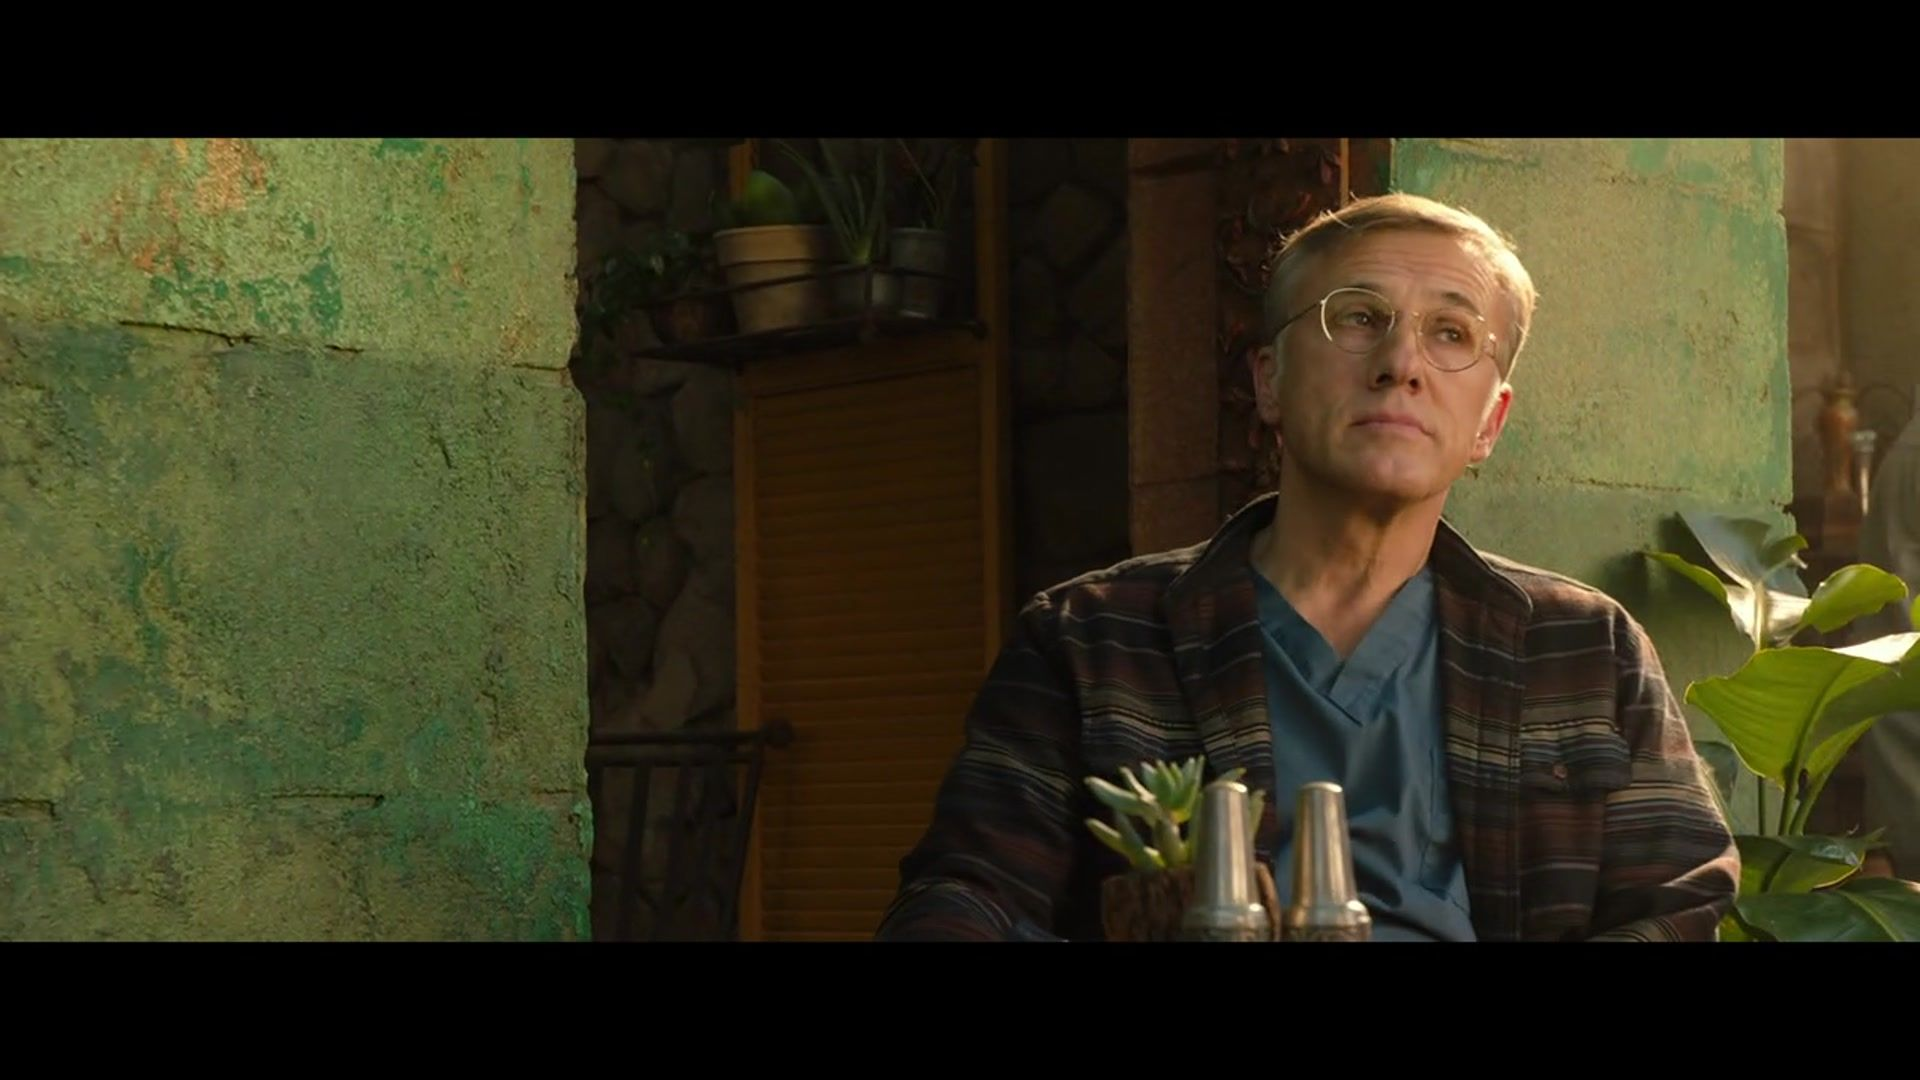 Alita: Battle Angel (2019) - Where to Watch It Streaming